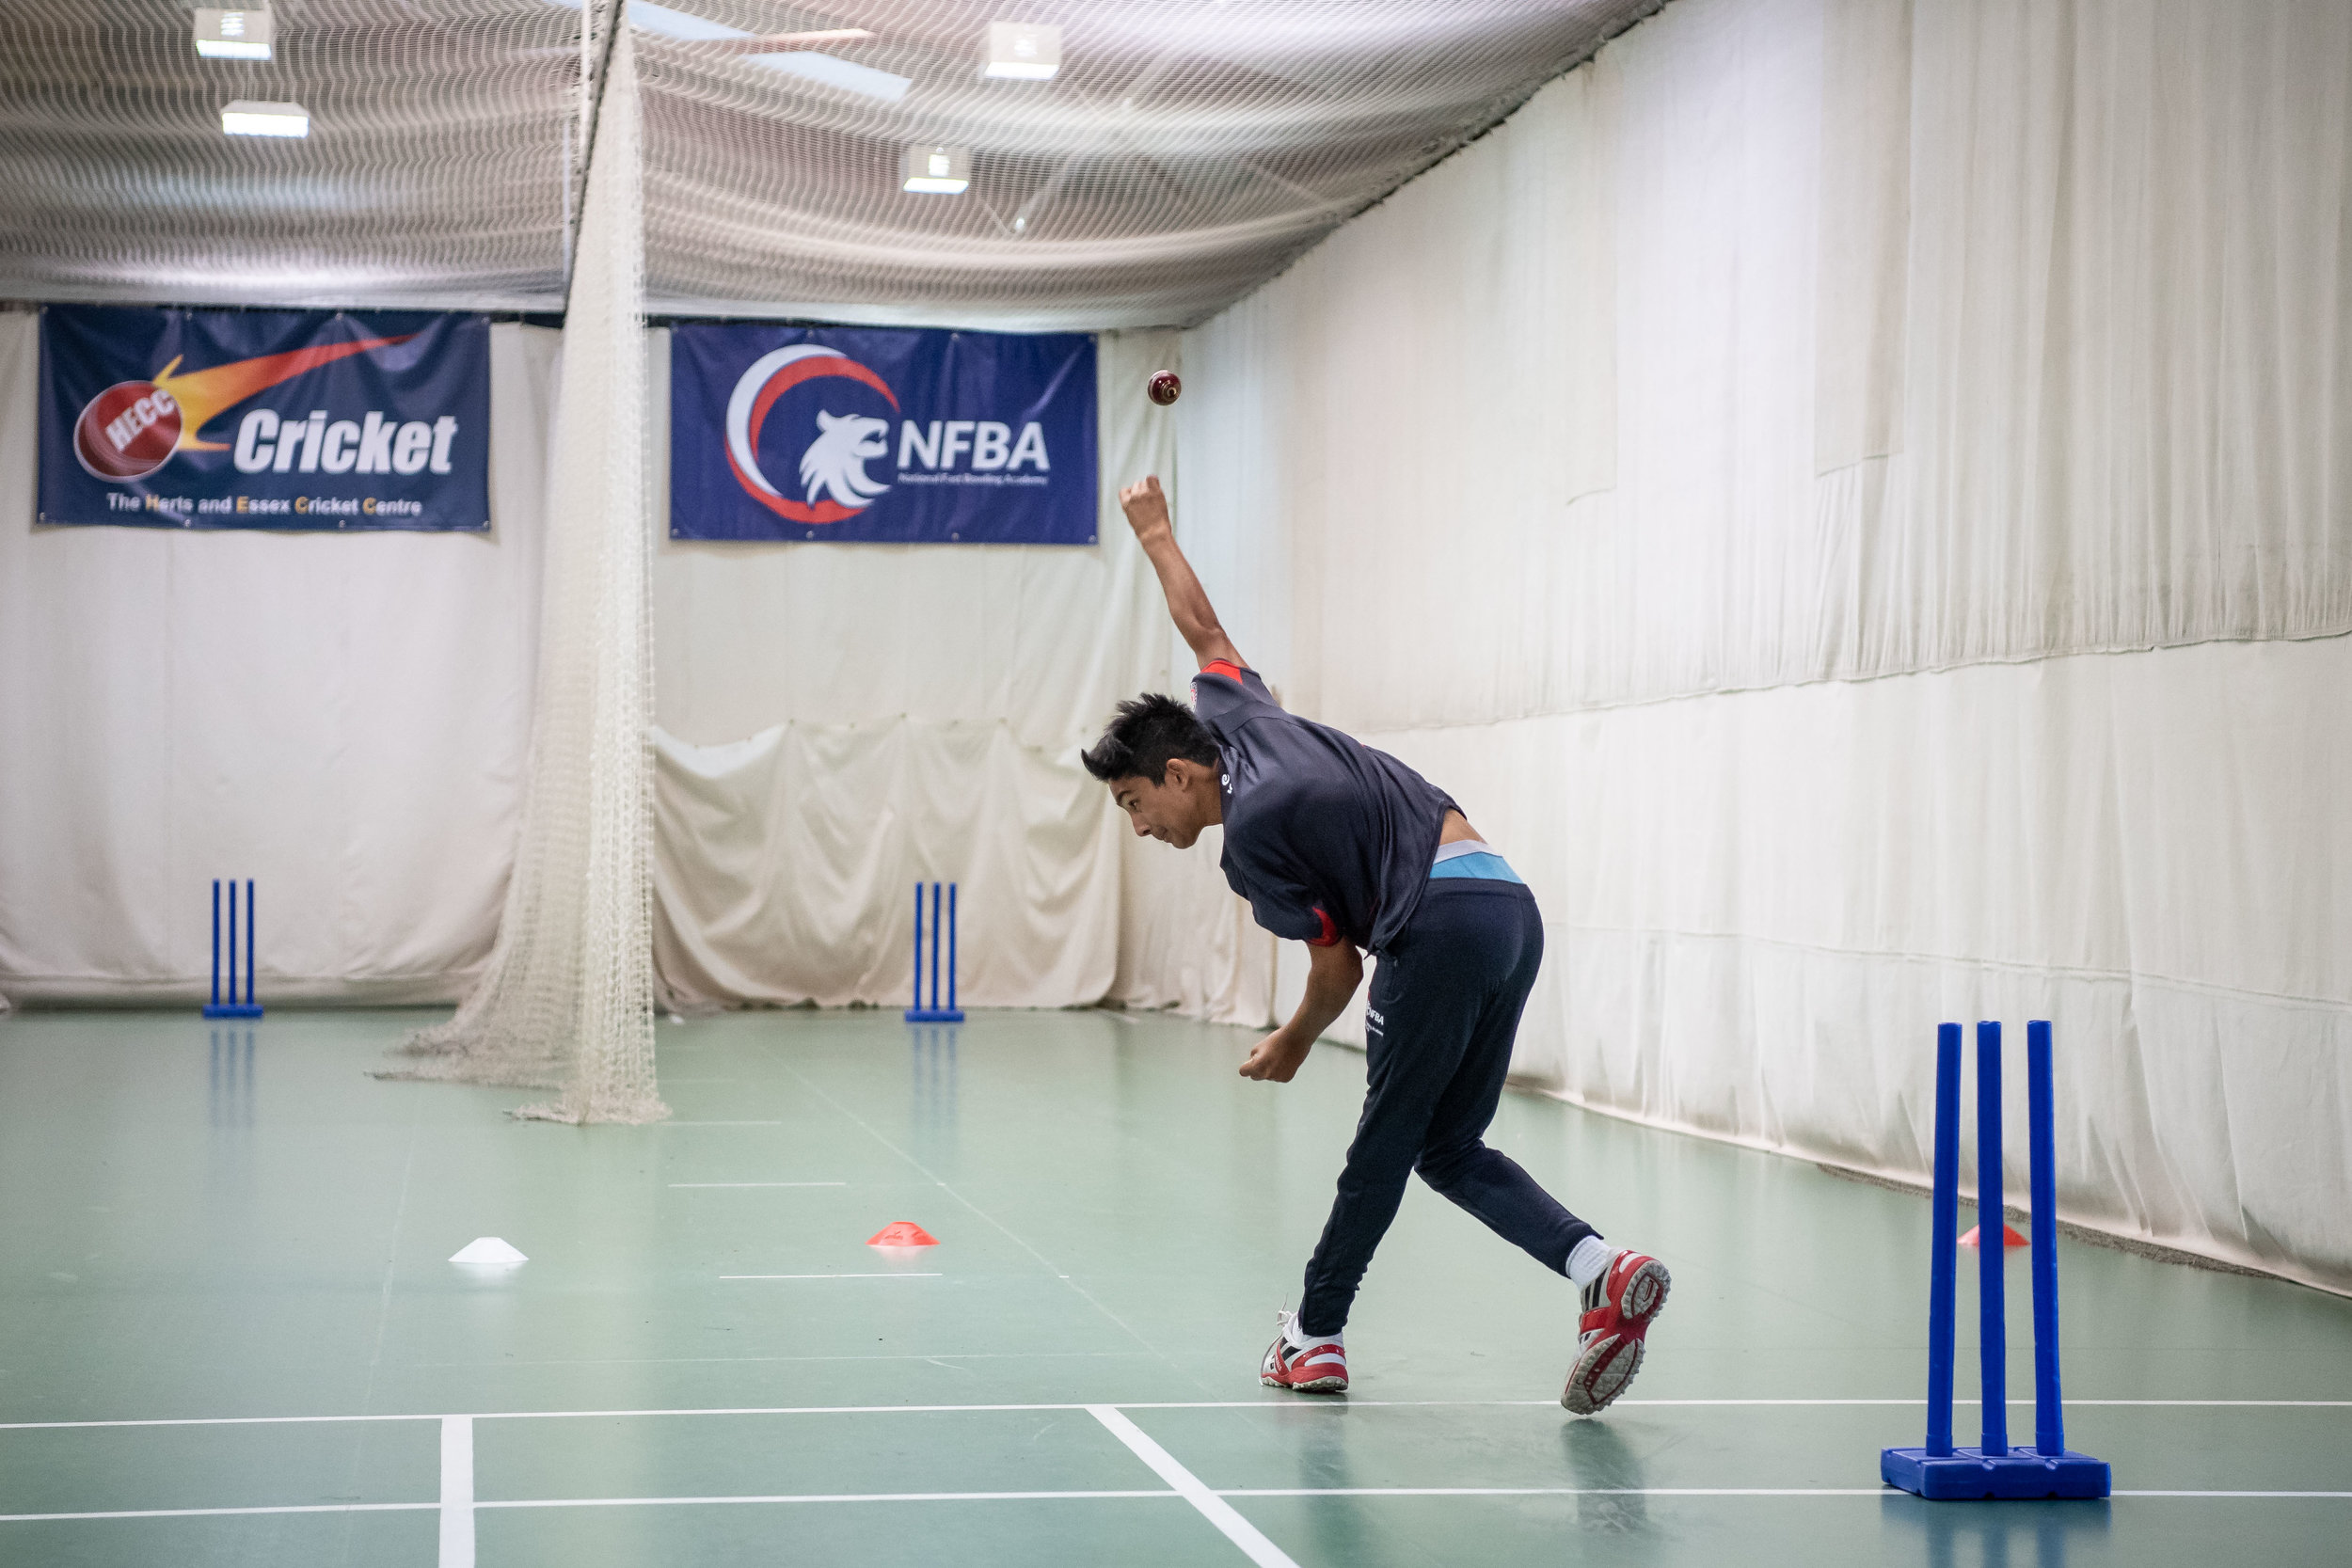 PSI_National_Fast_Bowling_Academy_21OCT18_SW_211.JPG